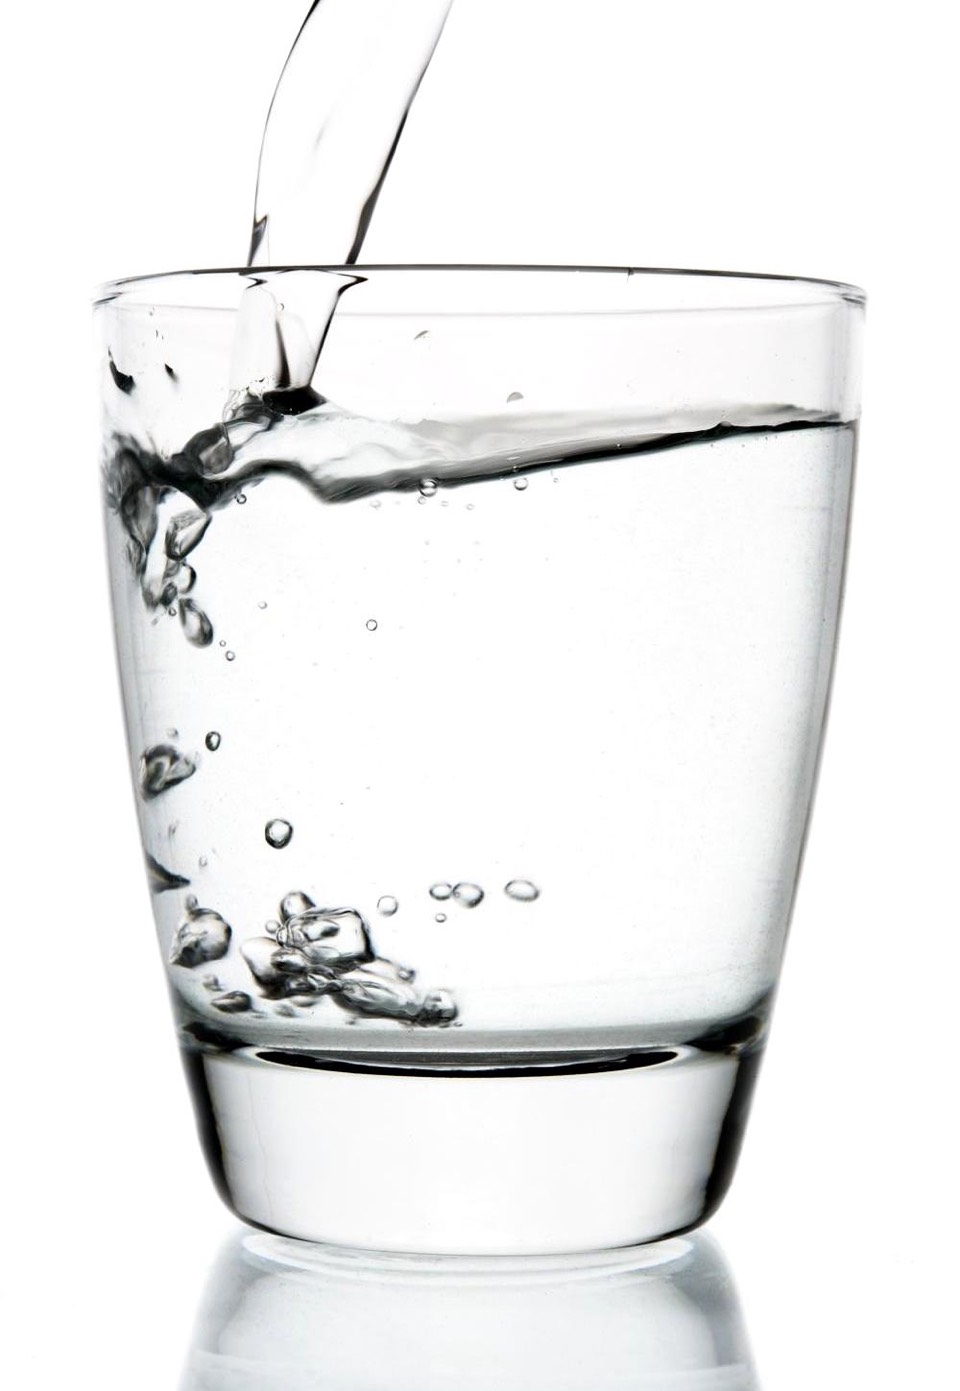 Step 2: while standing against the wall, drink a full glass of water